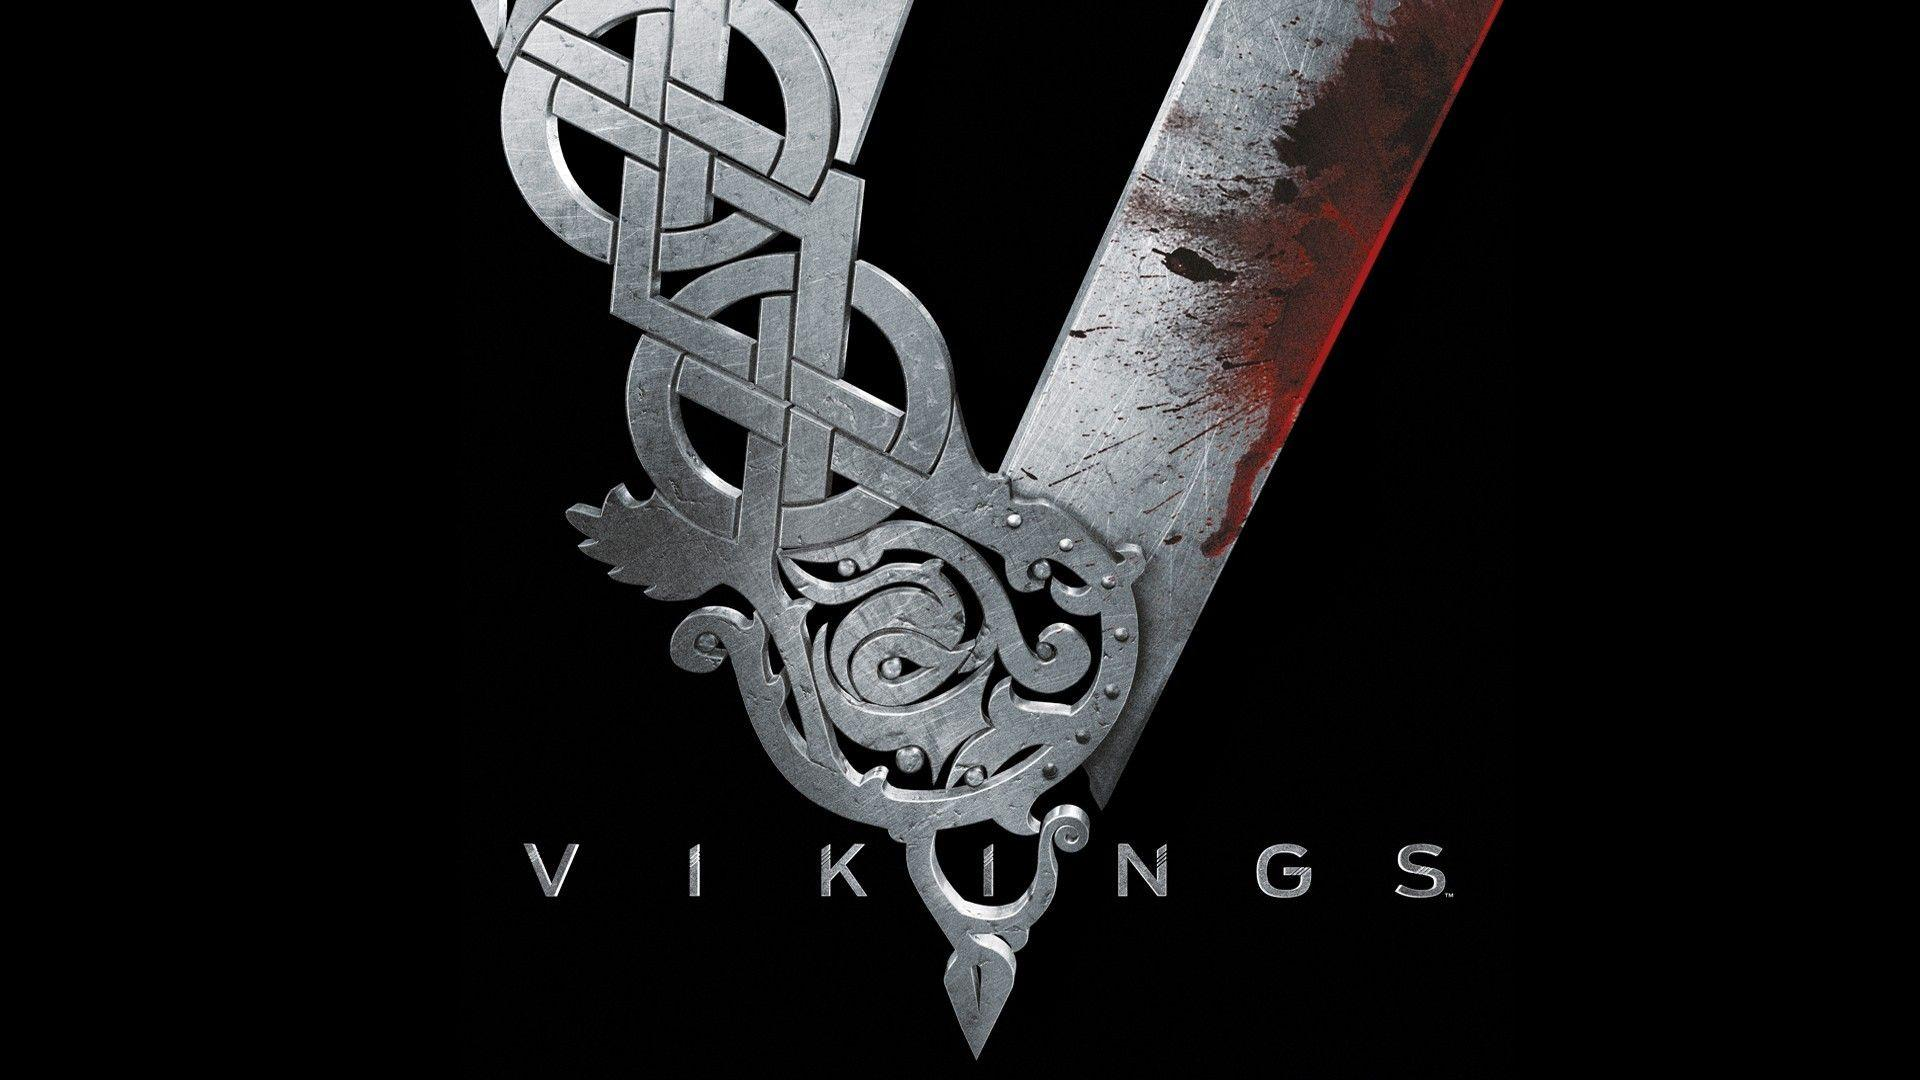 Vikings Wallpapers, Pictures, Image